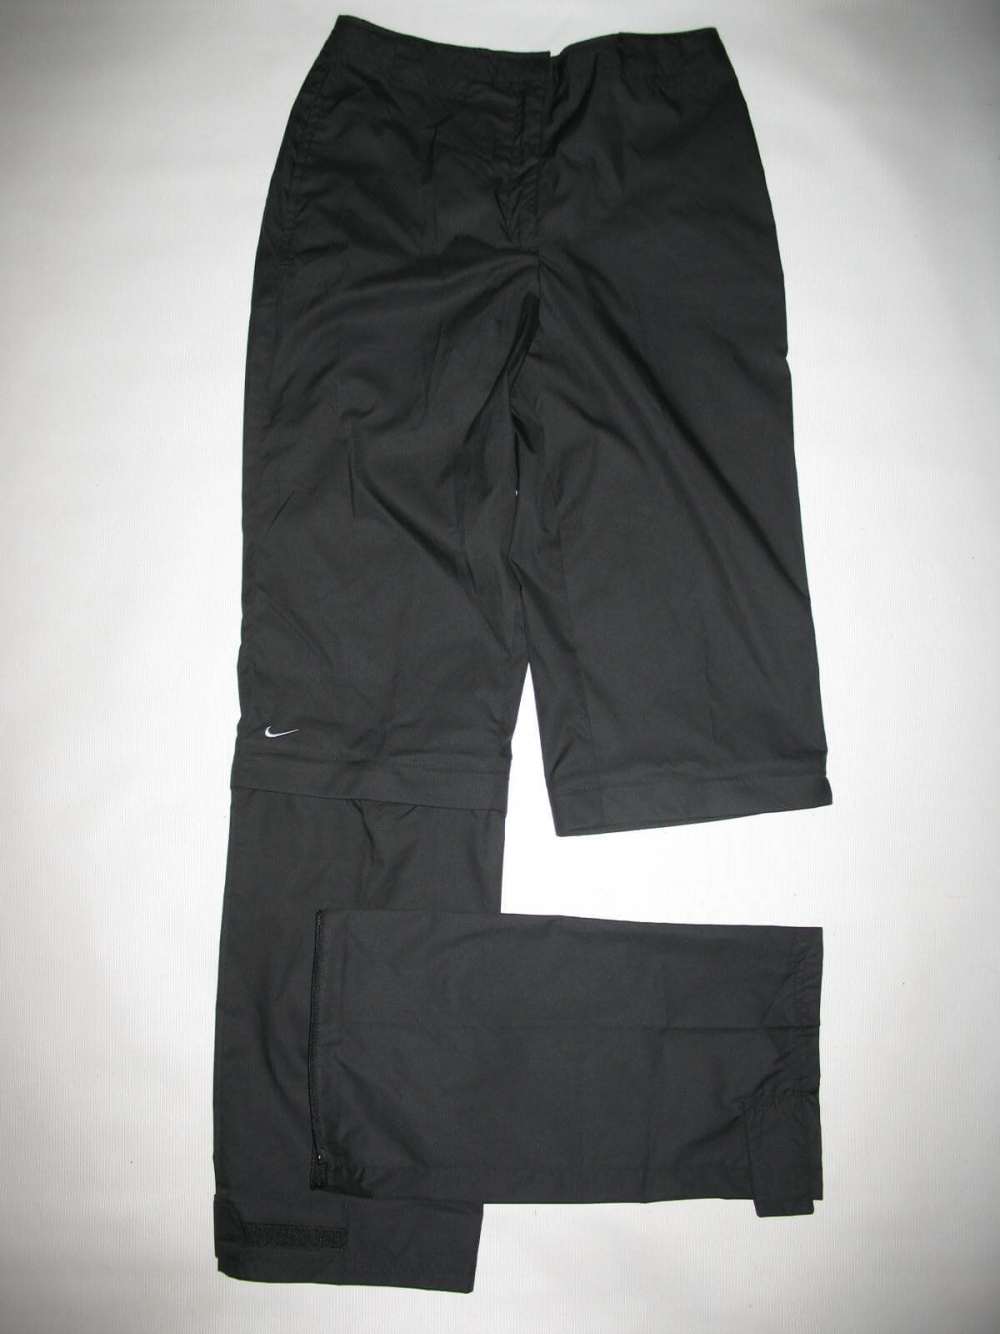 Штаны NIKE clima fit 2in1 pants lady (размер XS) - 2